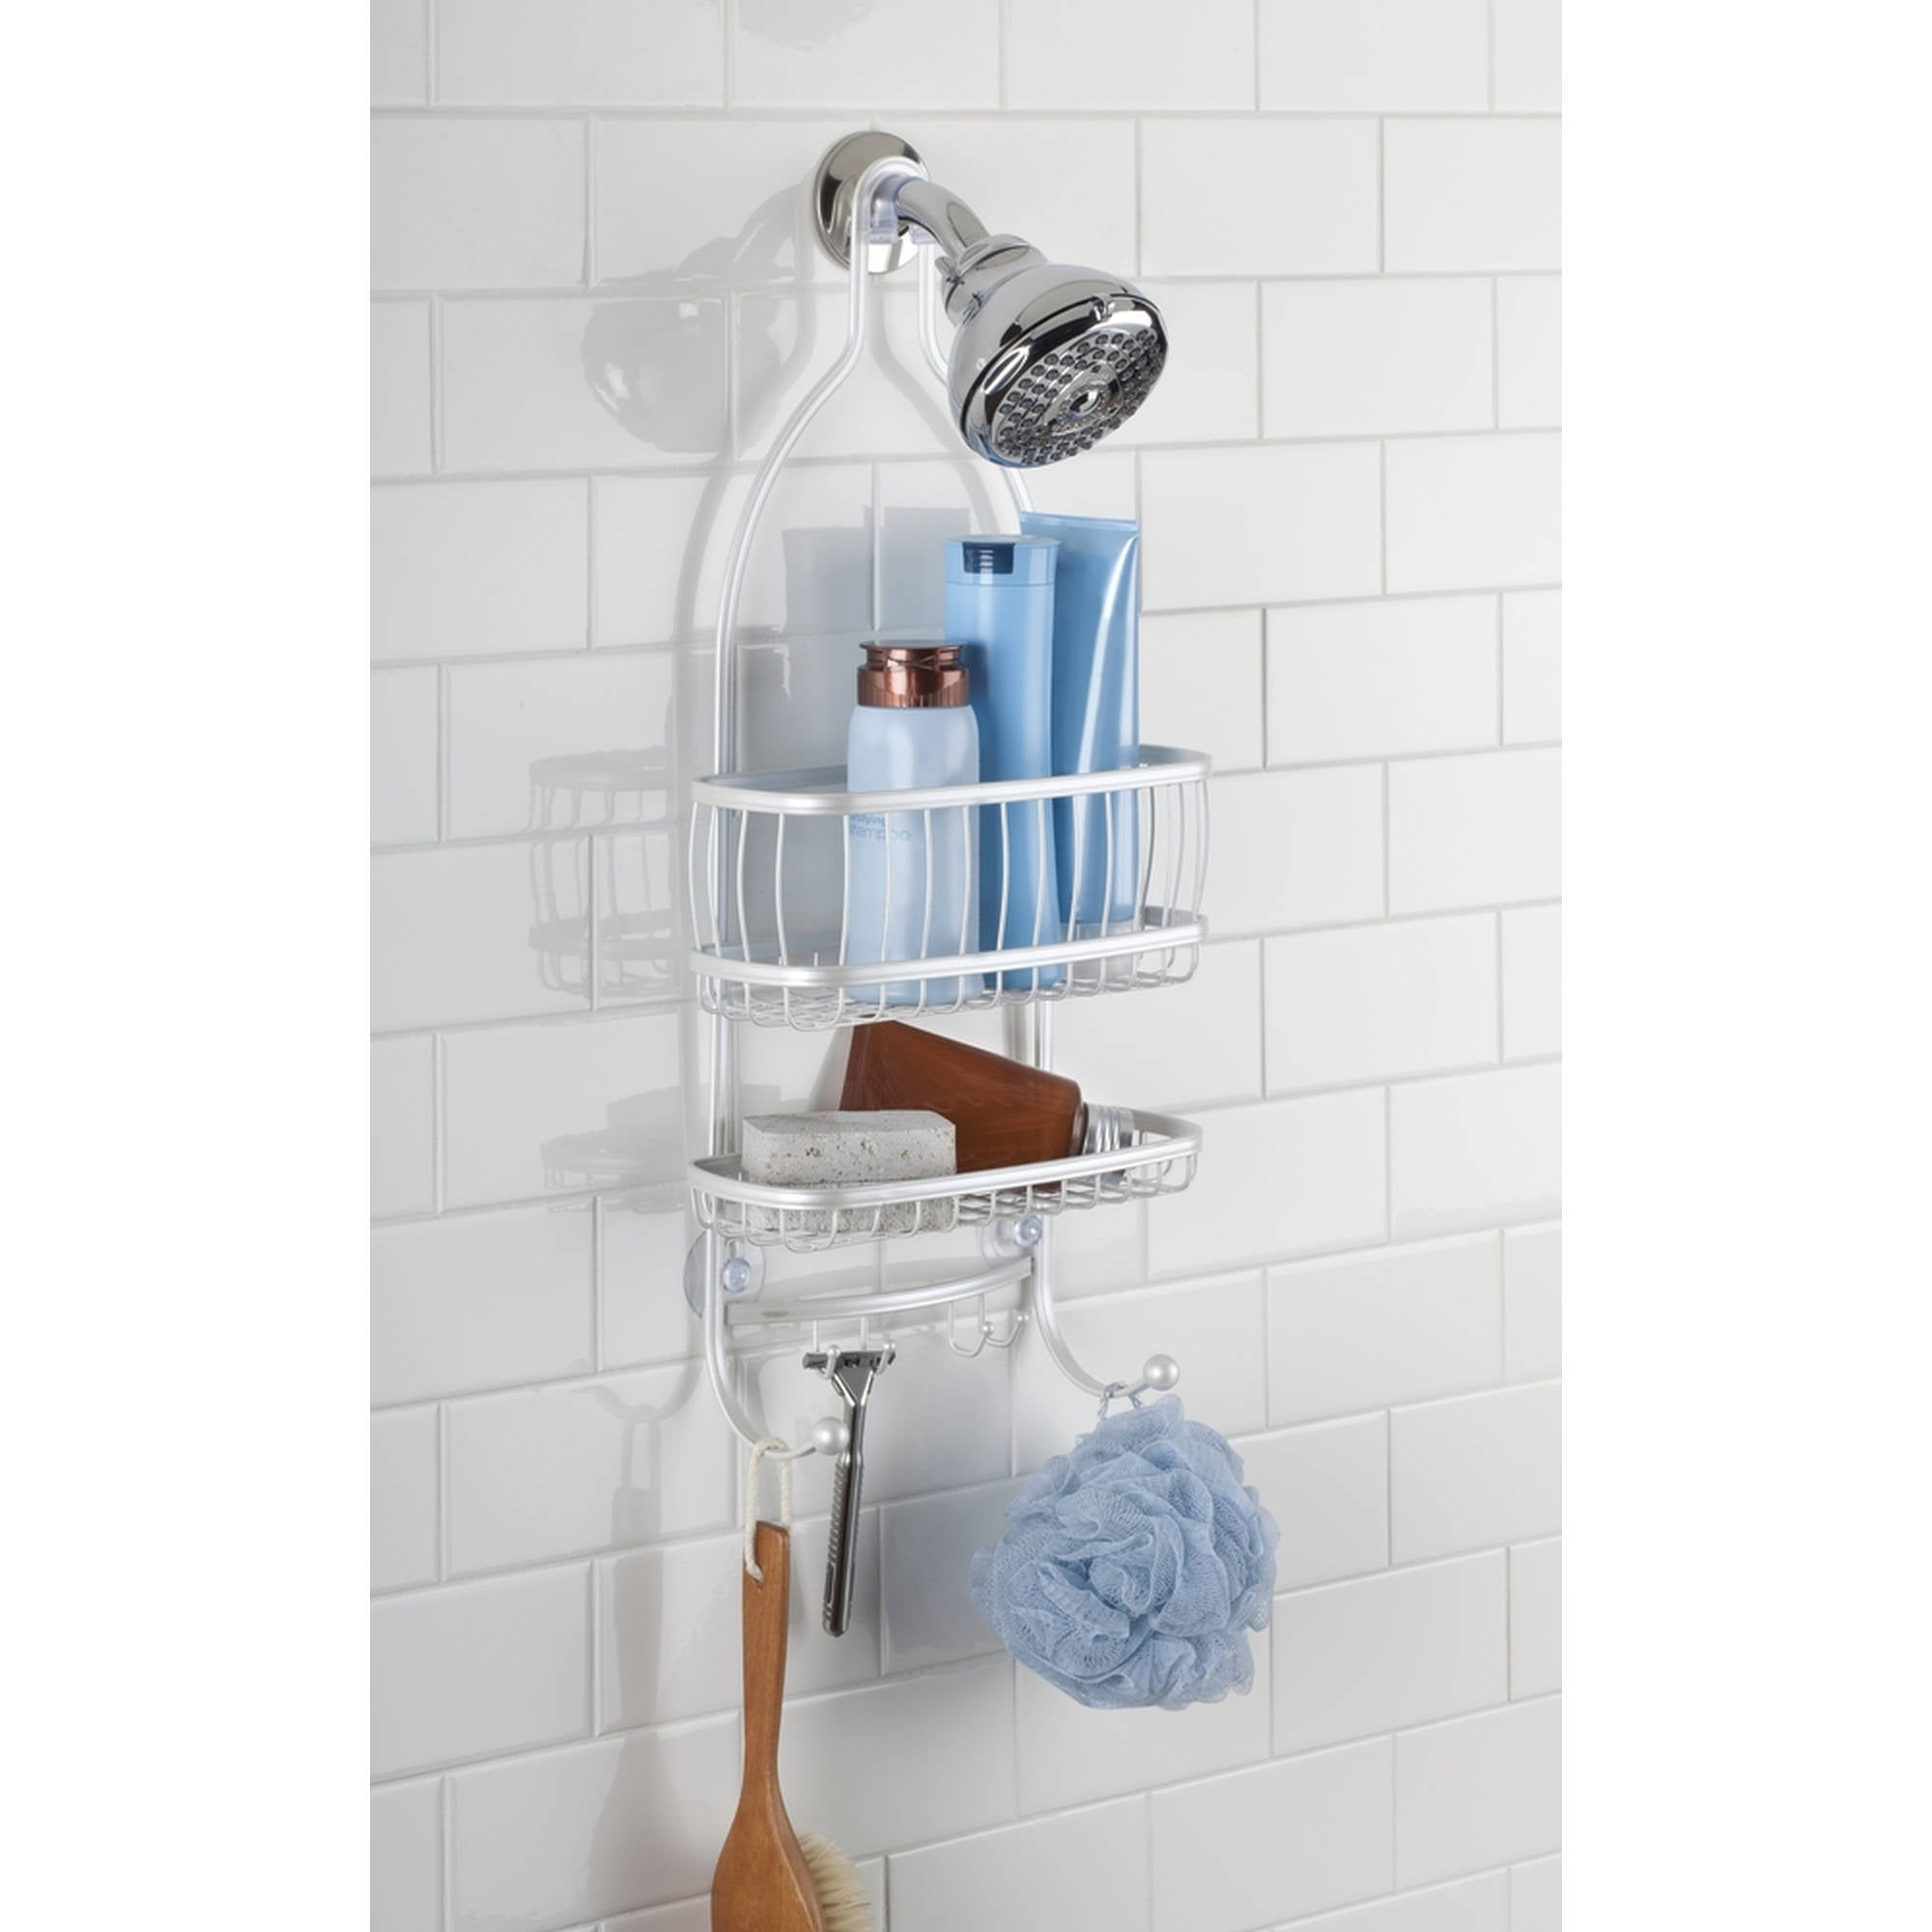 InterDesign York Lyra Bathroom Shower Caddy, Pearl White by Generic